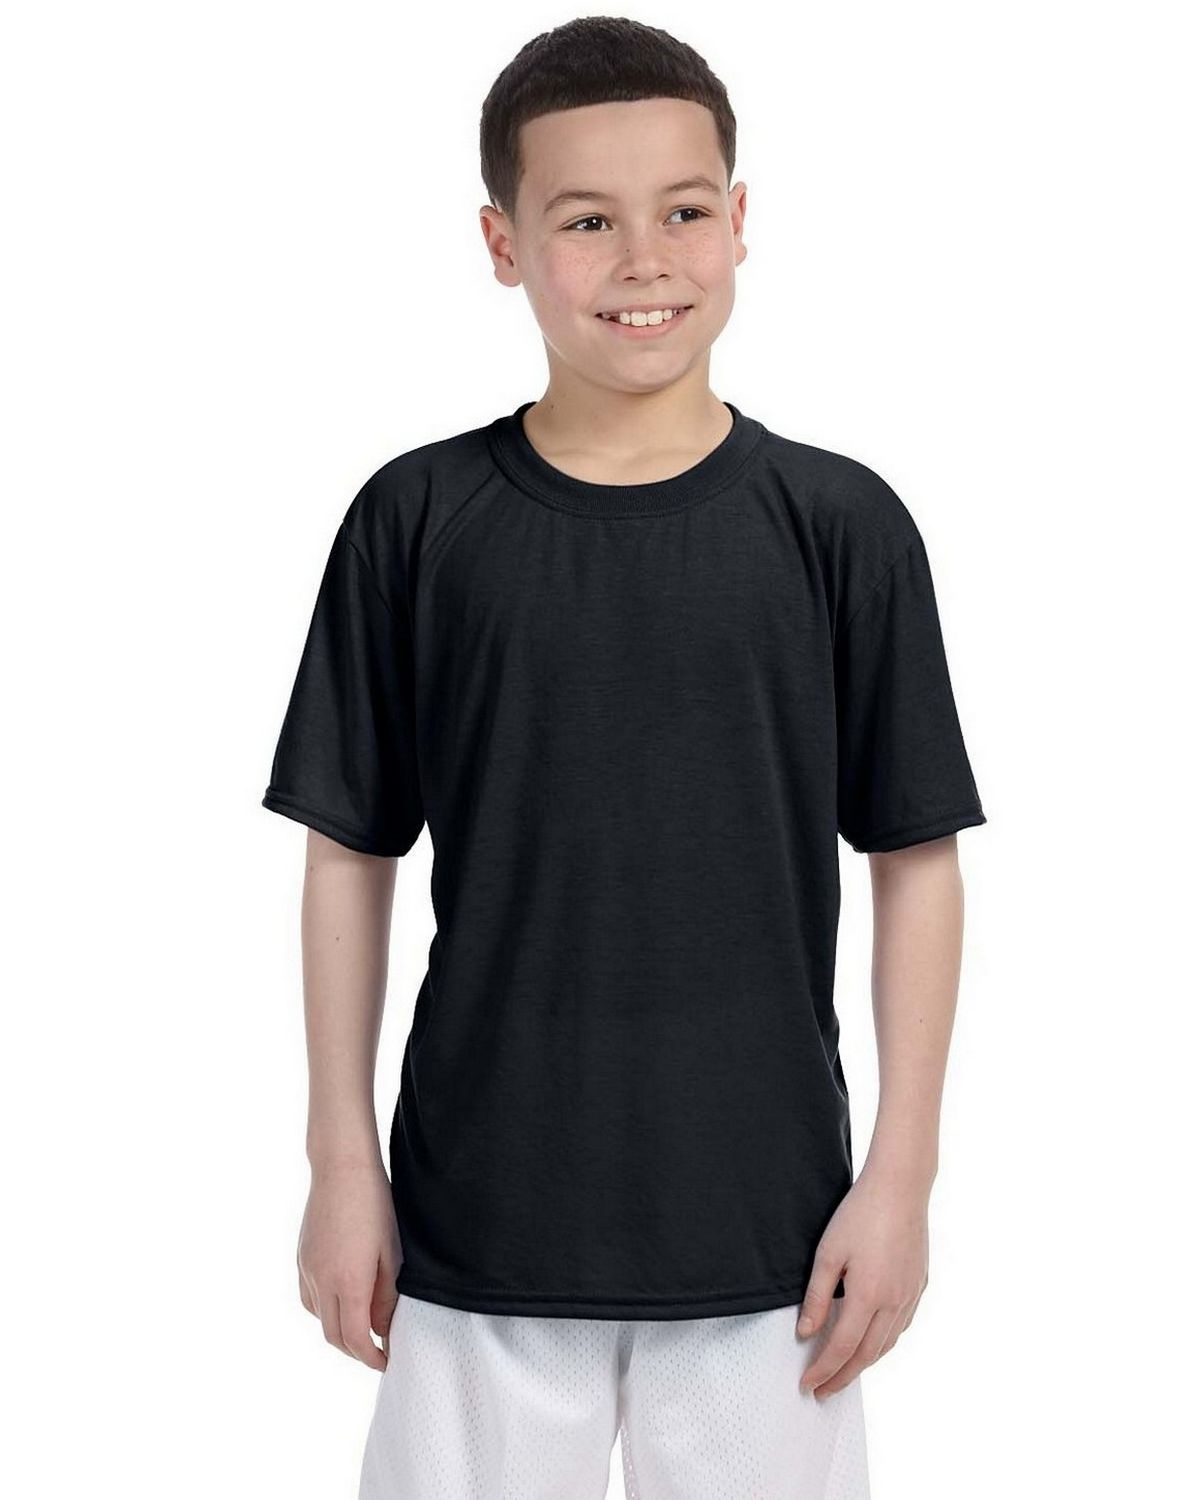 Gildan G420B Youth Performance T Shirt - Black - L G420B